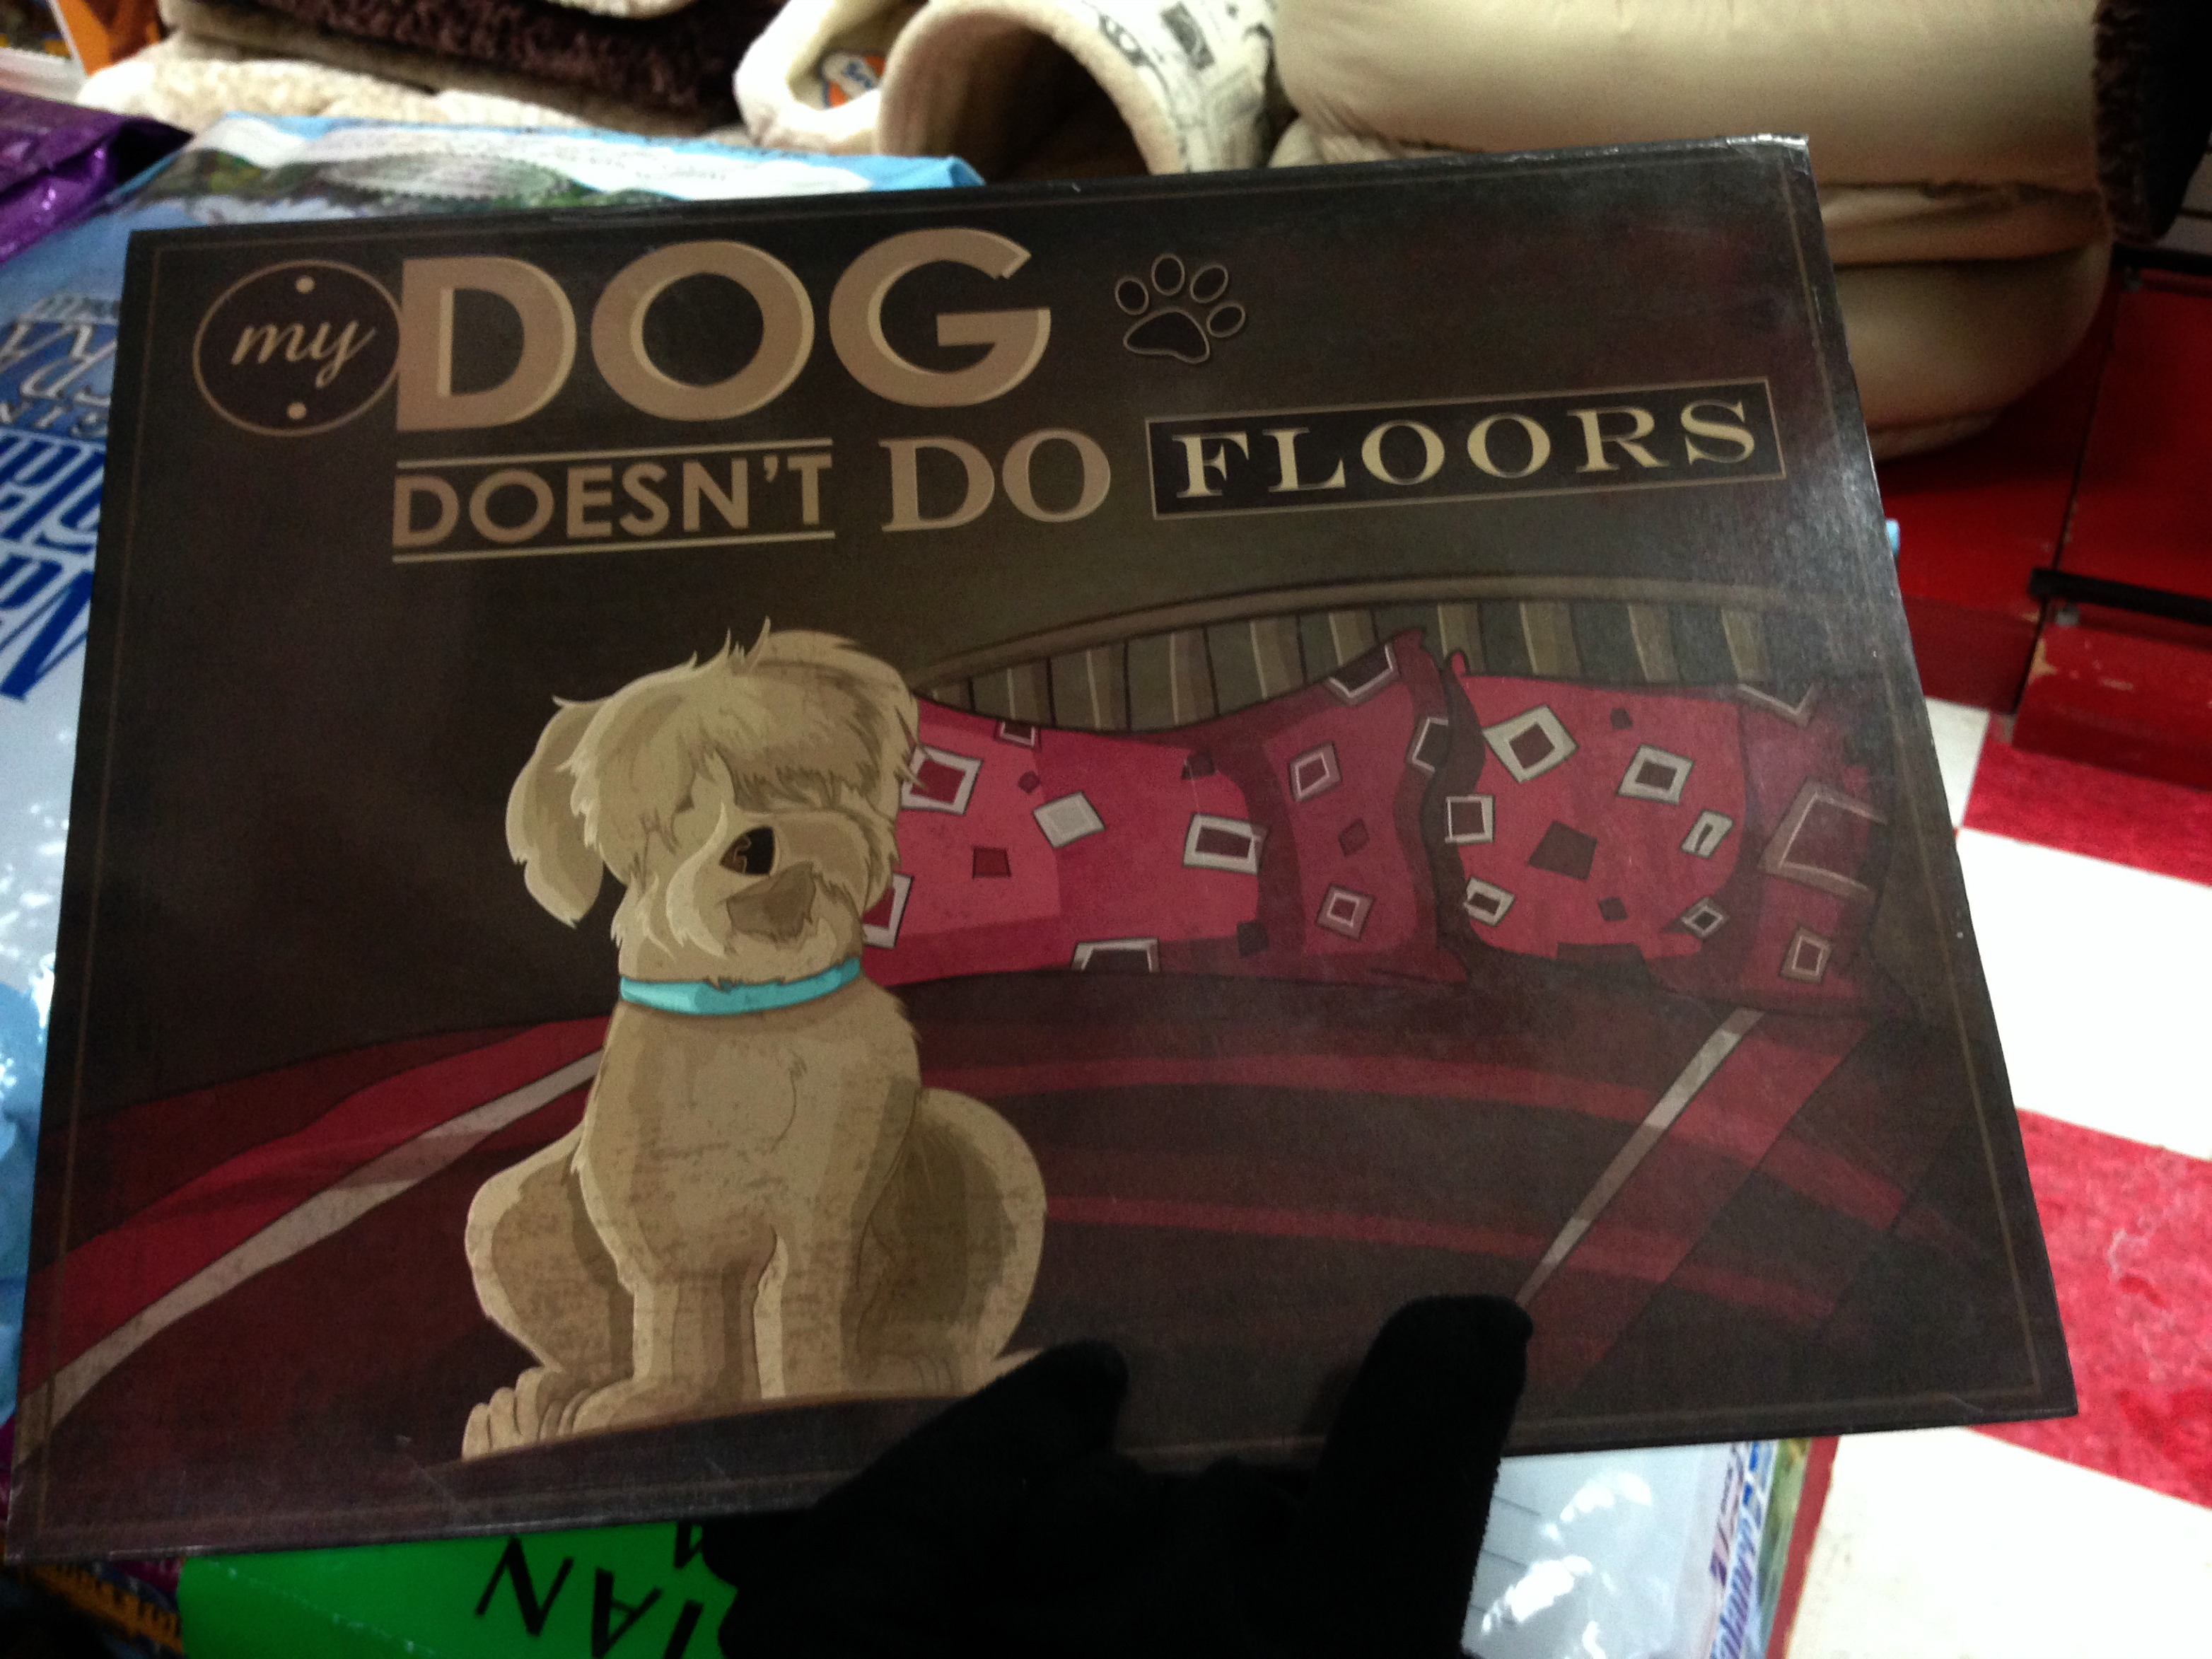 My dog doesn't do floors print